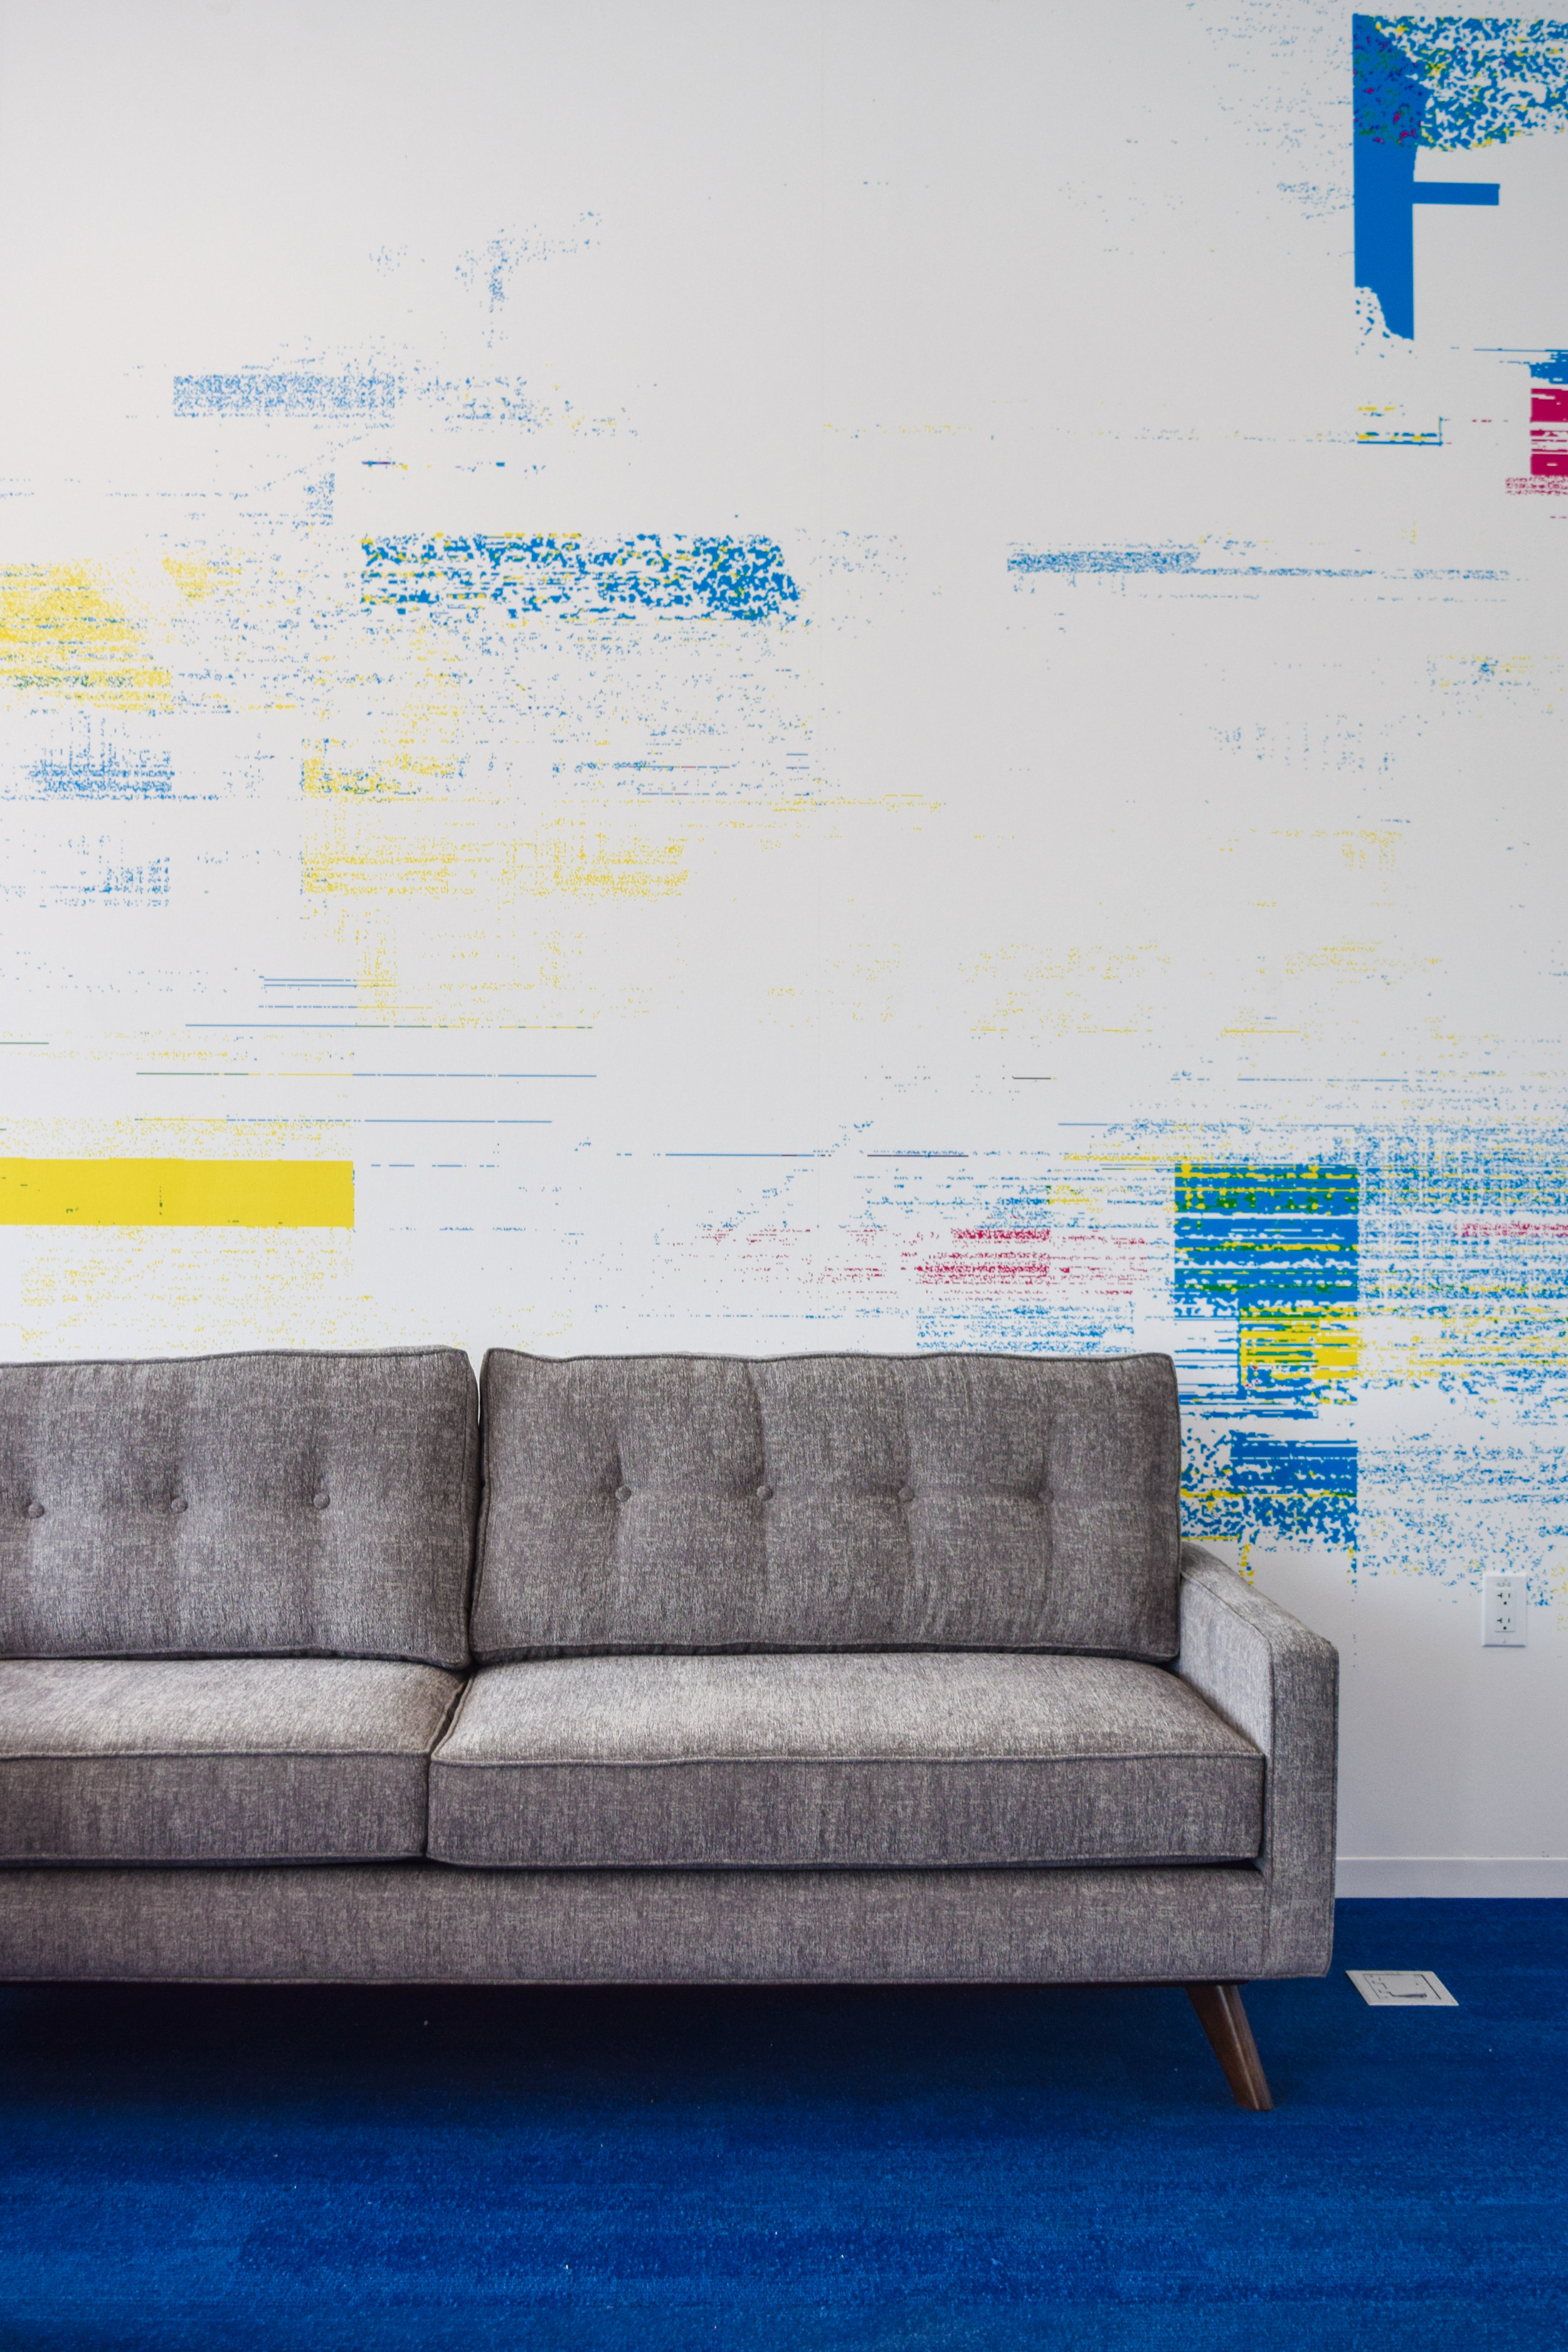 Design of wall mural in tech support office